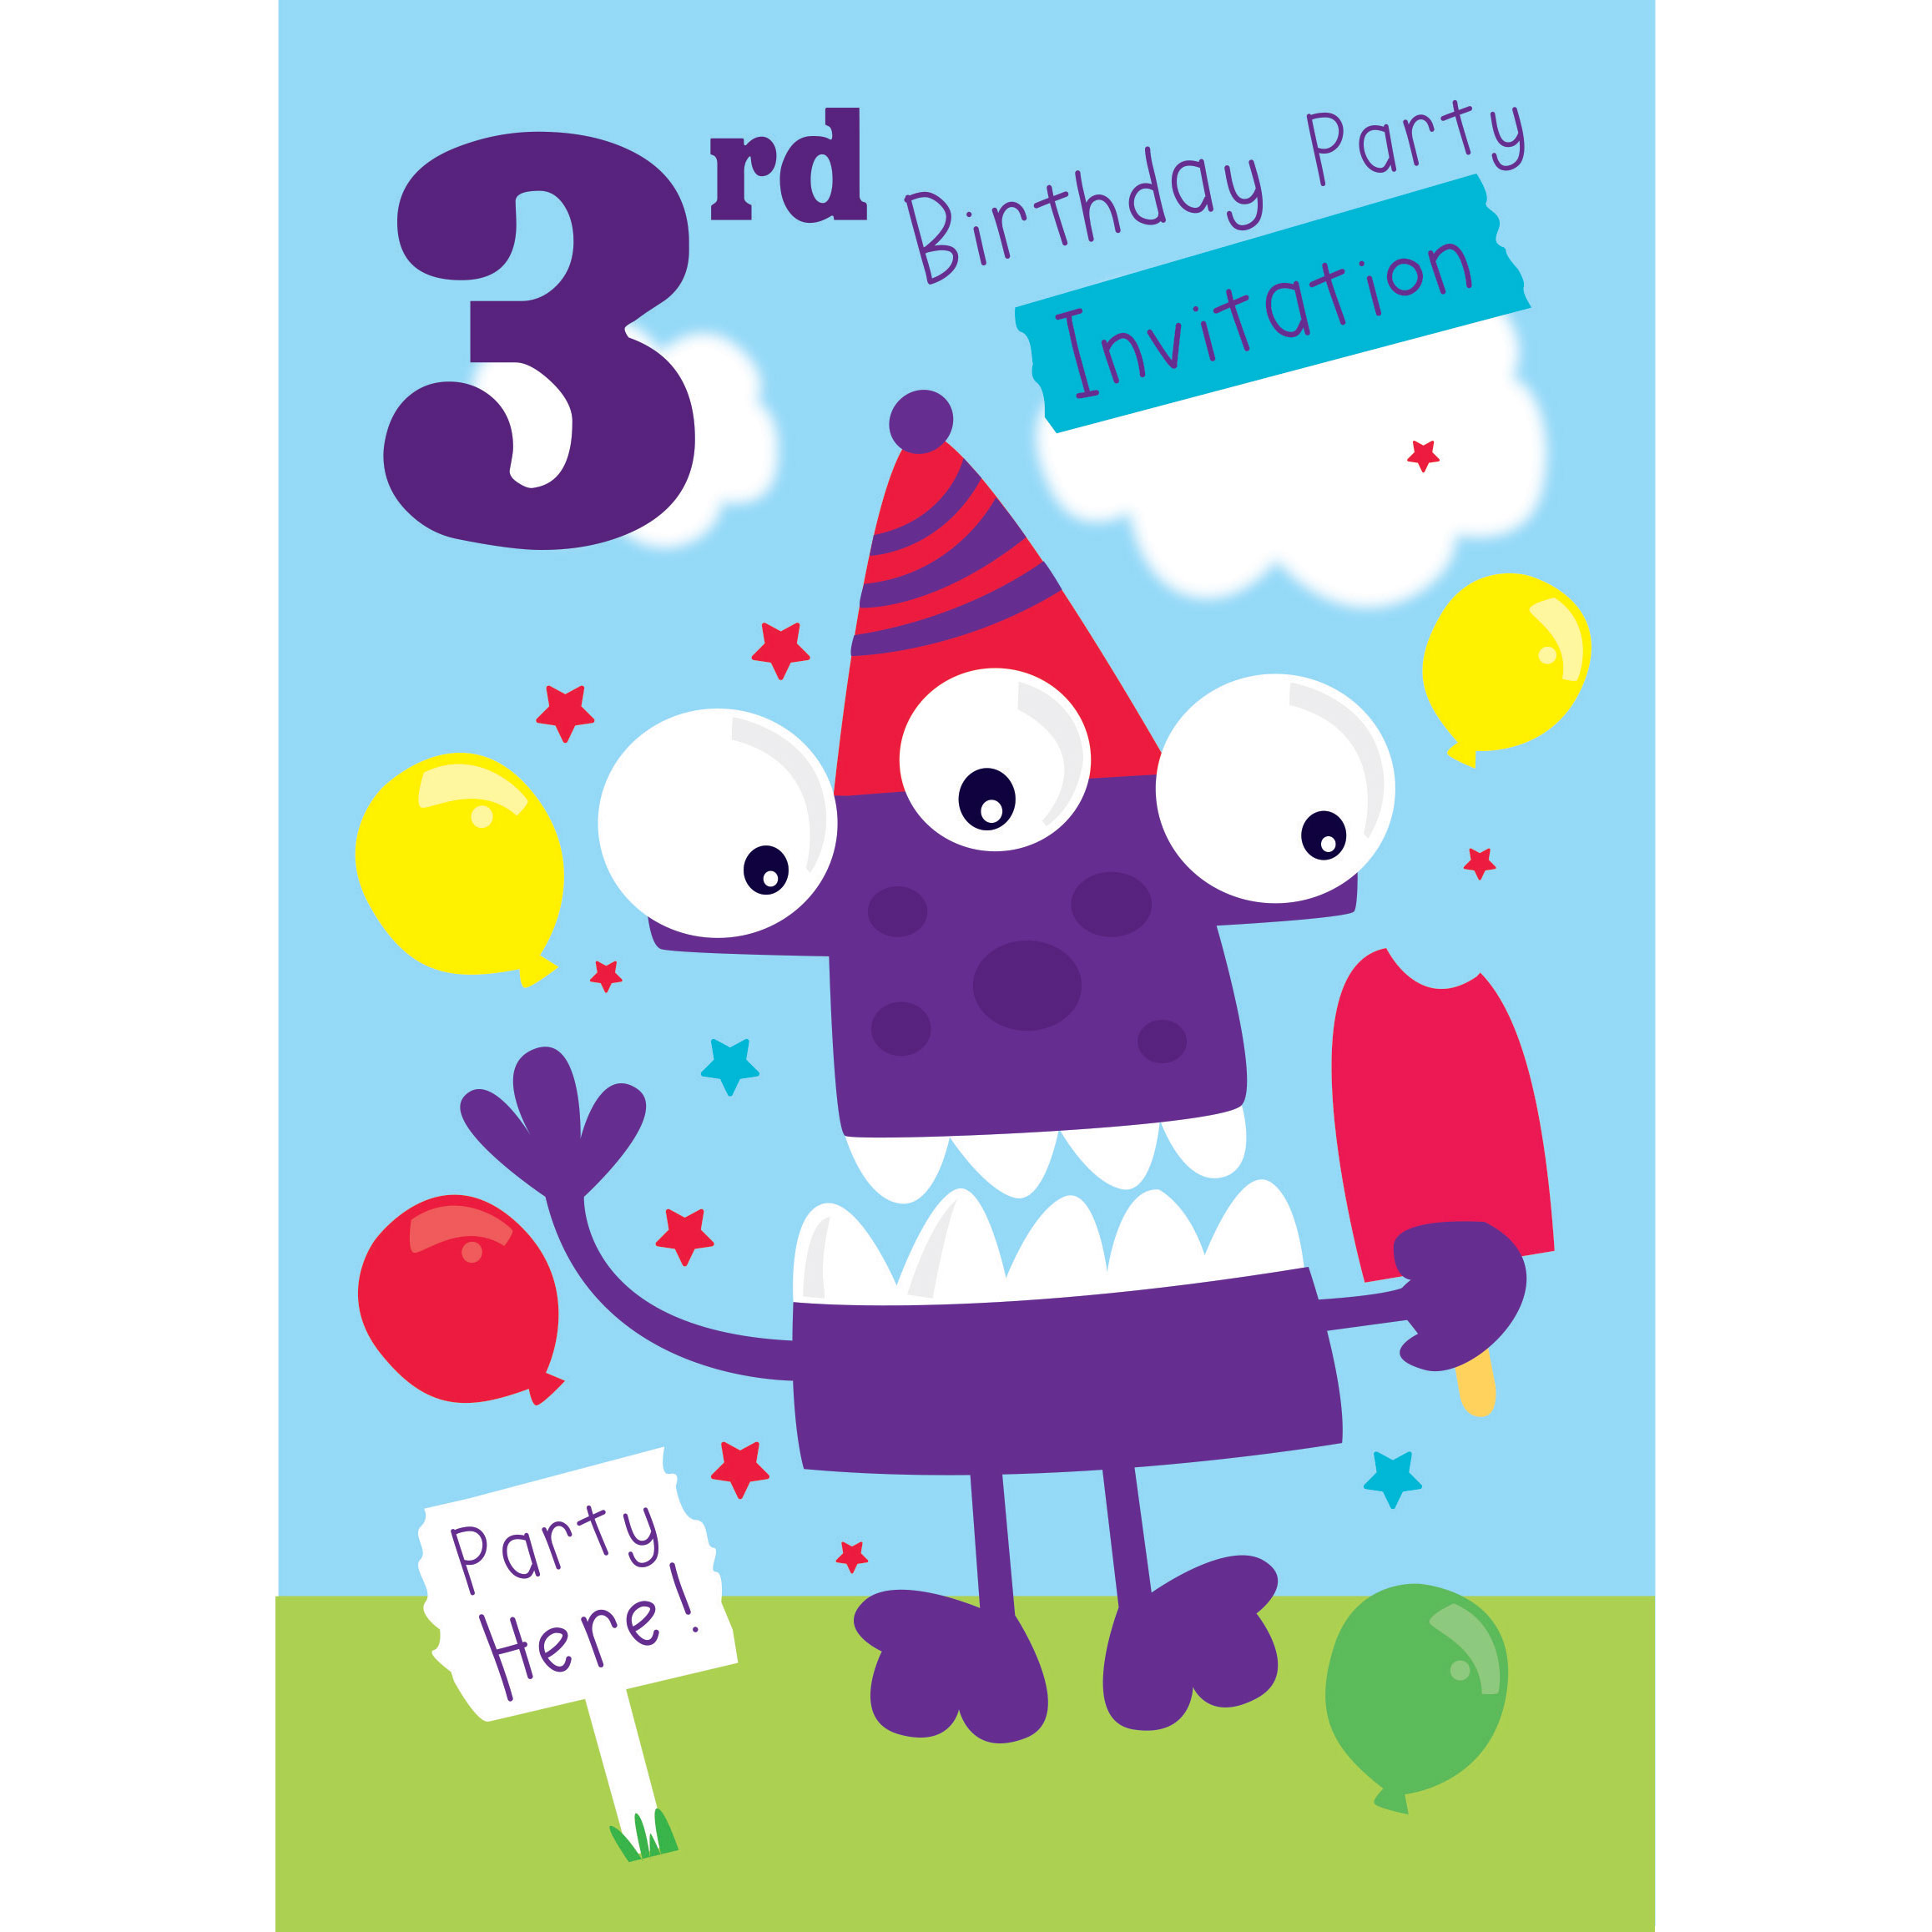 Big happy birthday badges party products party delights - 3rd Birthday Party Invites Medium